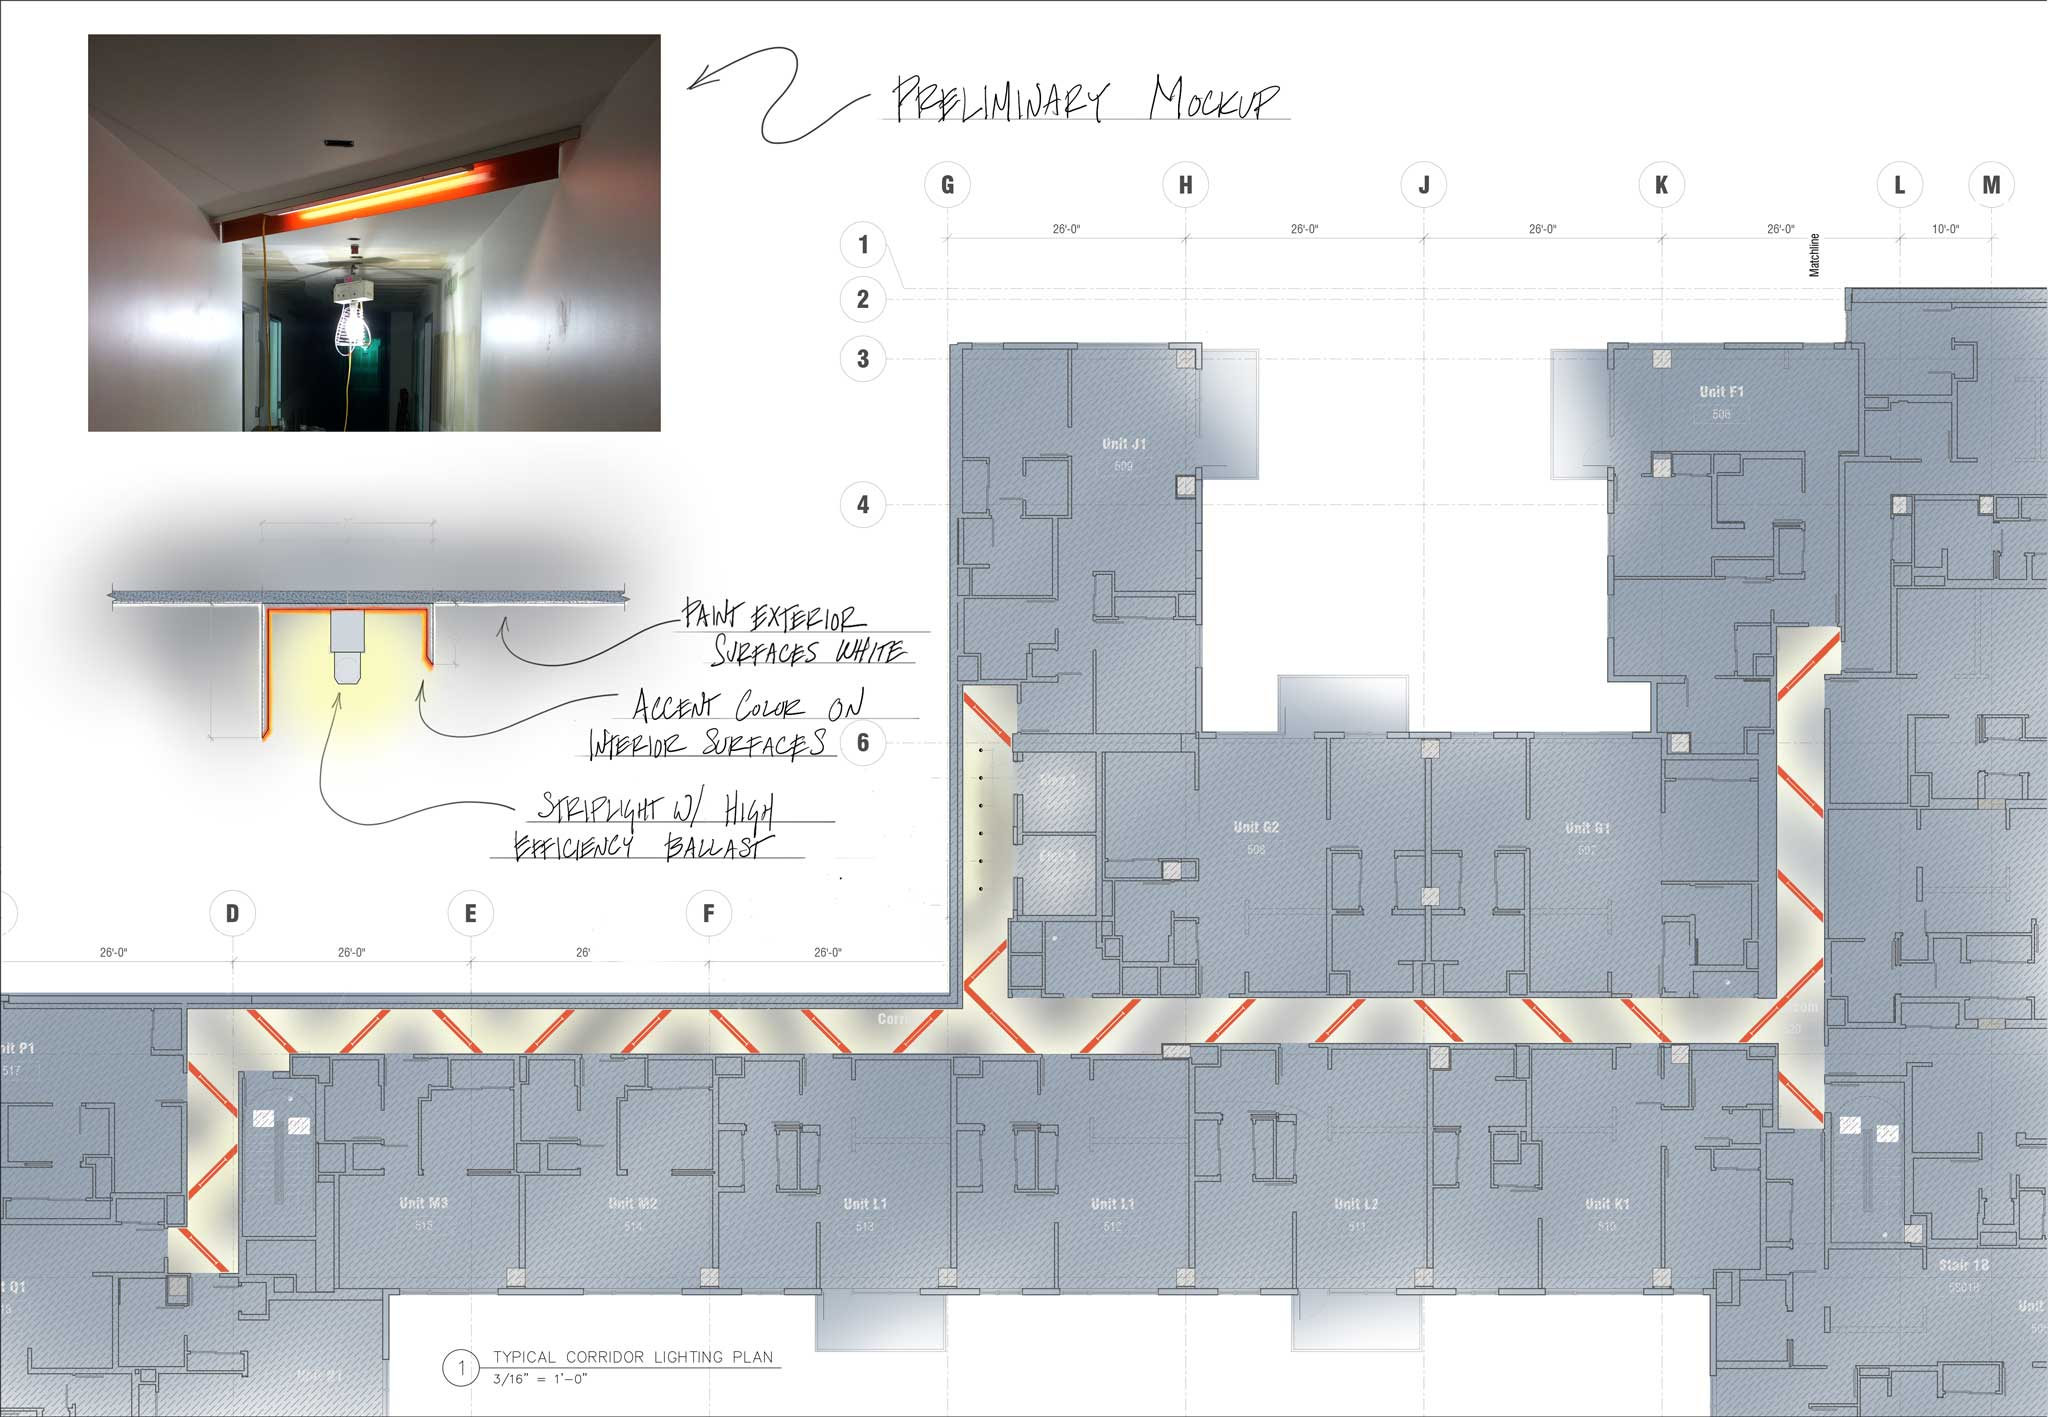 Lighting Design concept for multifamily residential